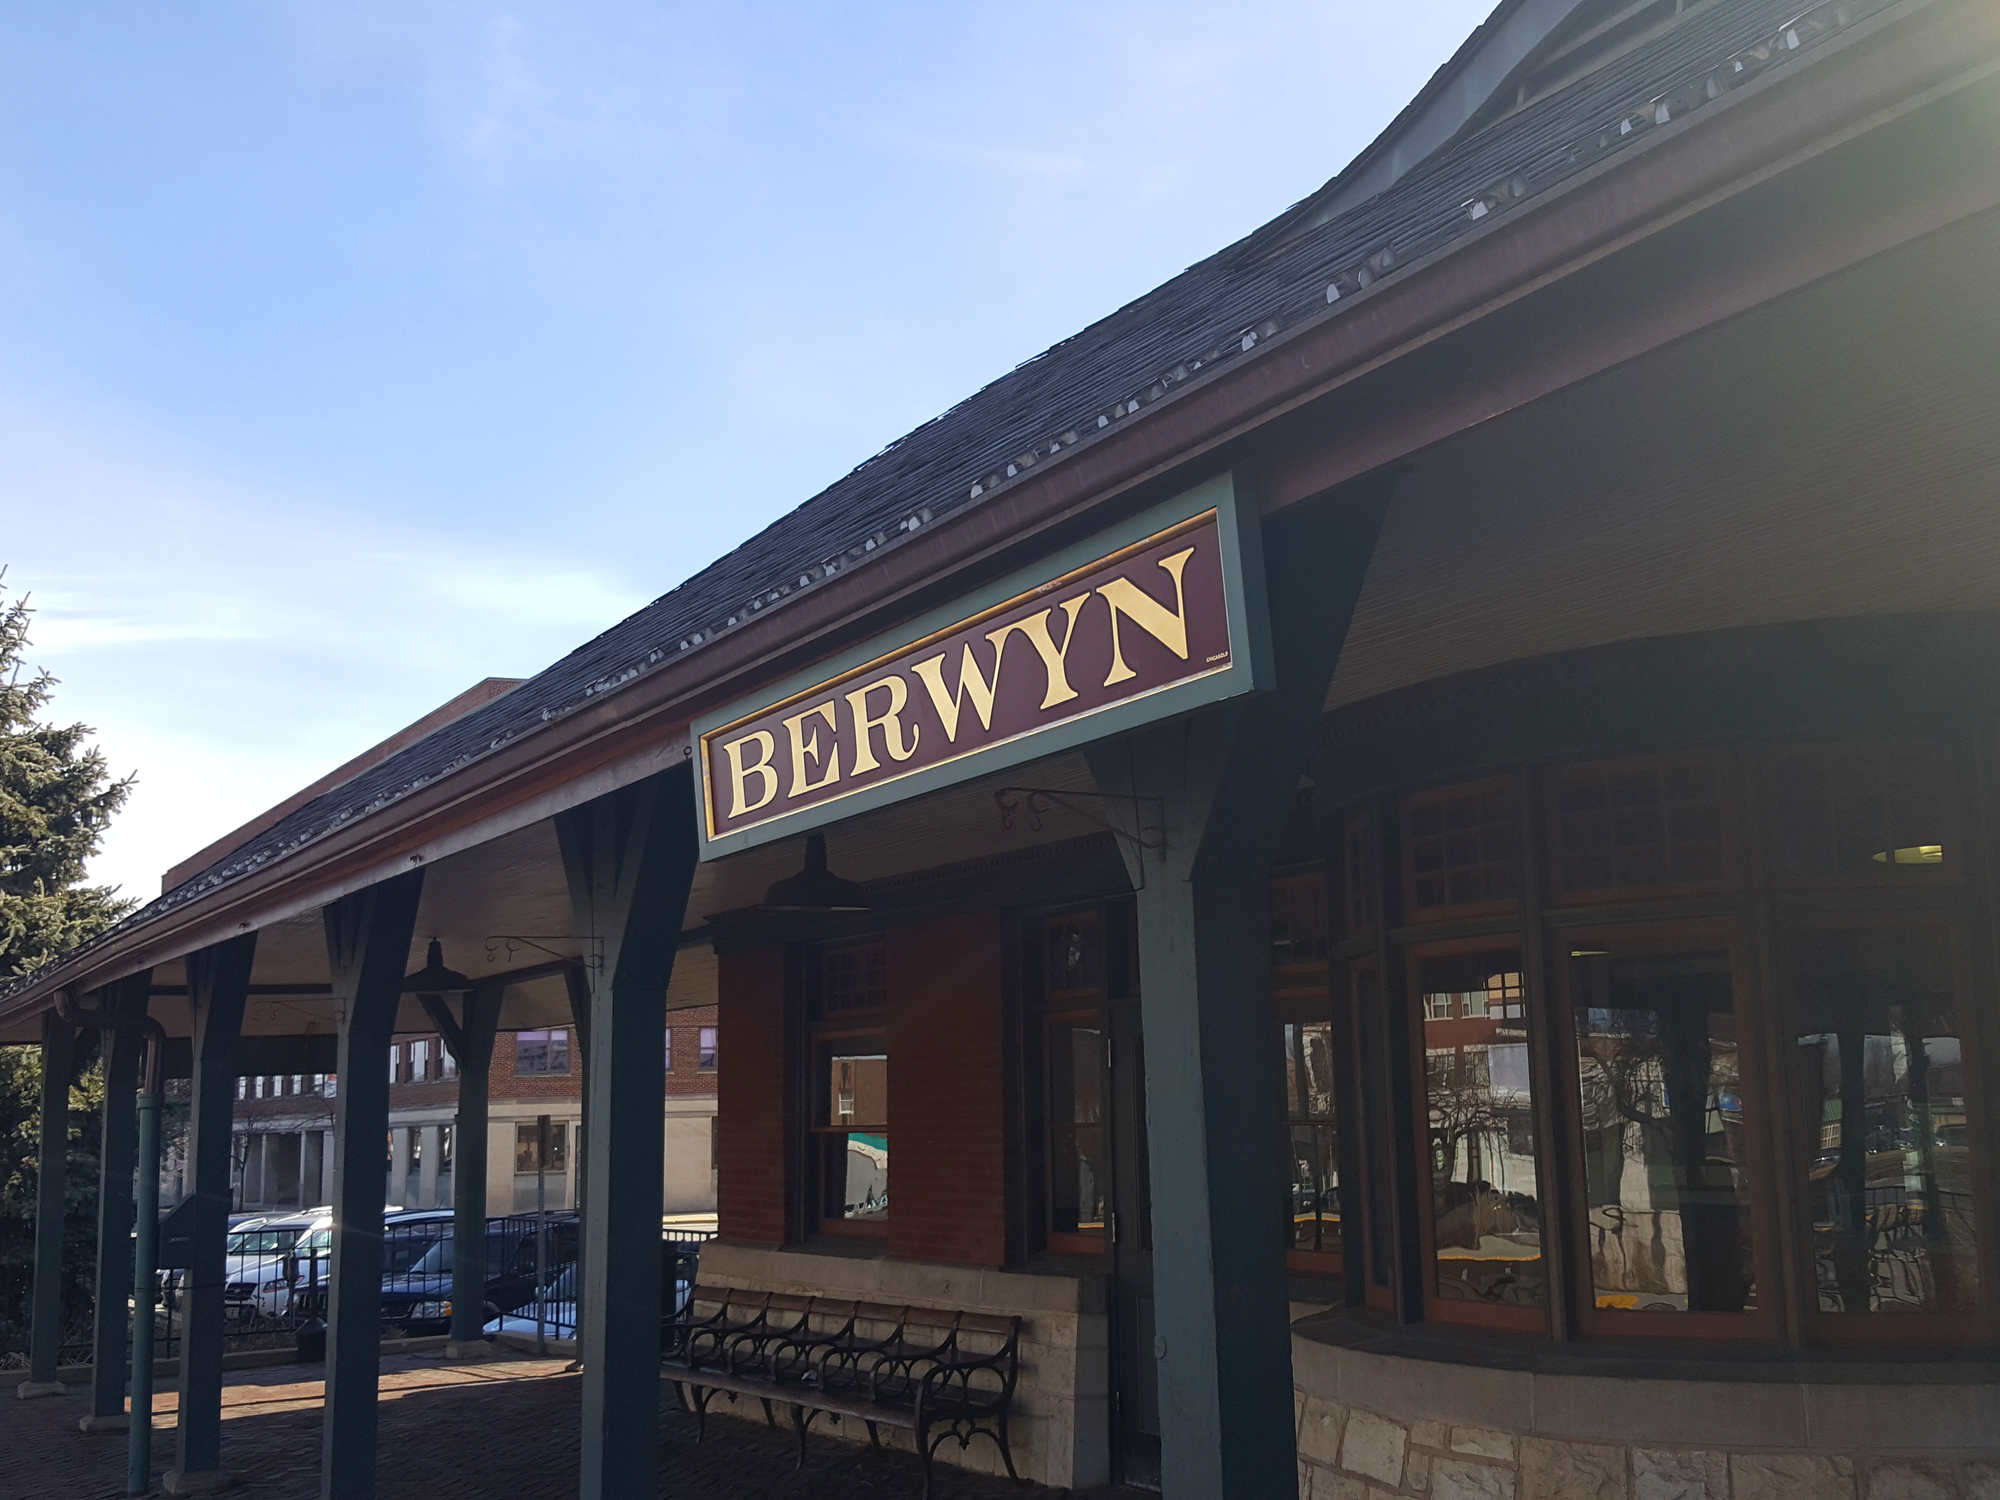 THE FOODITOR GUIDE TO SVENGOOLIE'S FAVORITE SUBURB, BERWYN